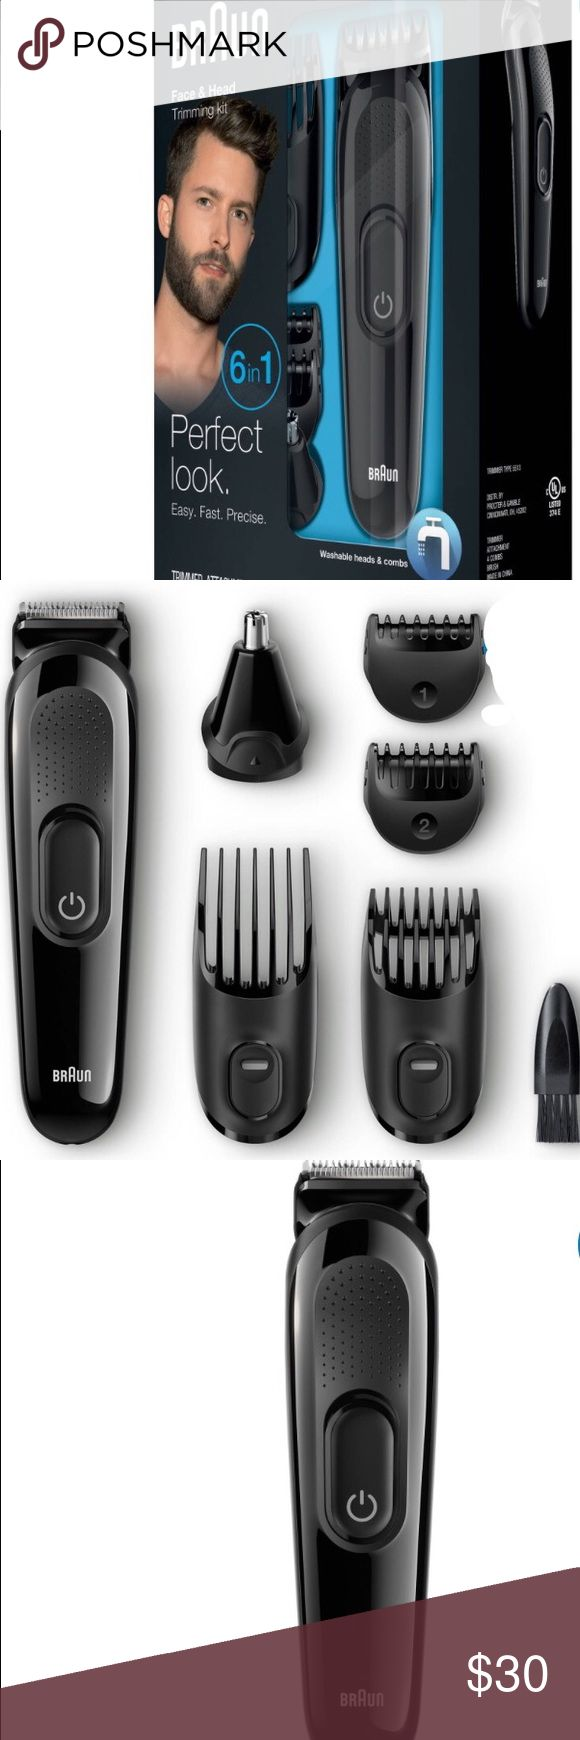 Braun MGK3020 6-in-1 Face/Hair Trimmer, 7 pc Kit: 4 combs covering 13 precision length settings from 0.5-21mm. An ear & nose trimmer attachment is also included. Lifetime lasting power - 40 minutes of precision trimming from a 10 hour charge. Ultimate precision w/ lifetime lasting sharp blades. Fully washable head and comb for easy cleaning under running water. Worlds# 1 Foil Shaver Brand Based on global Braun value share in electric foil shaver market. 6 different jobs effortlessly and stay…